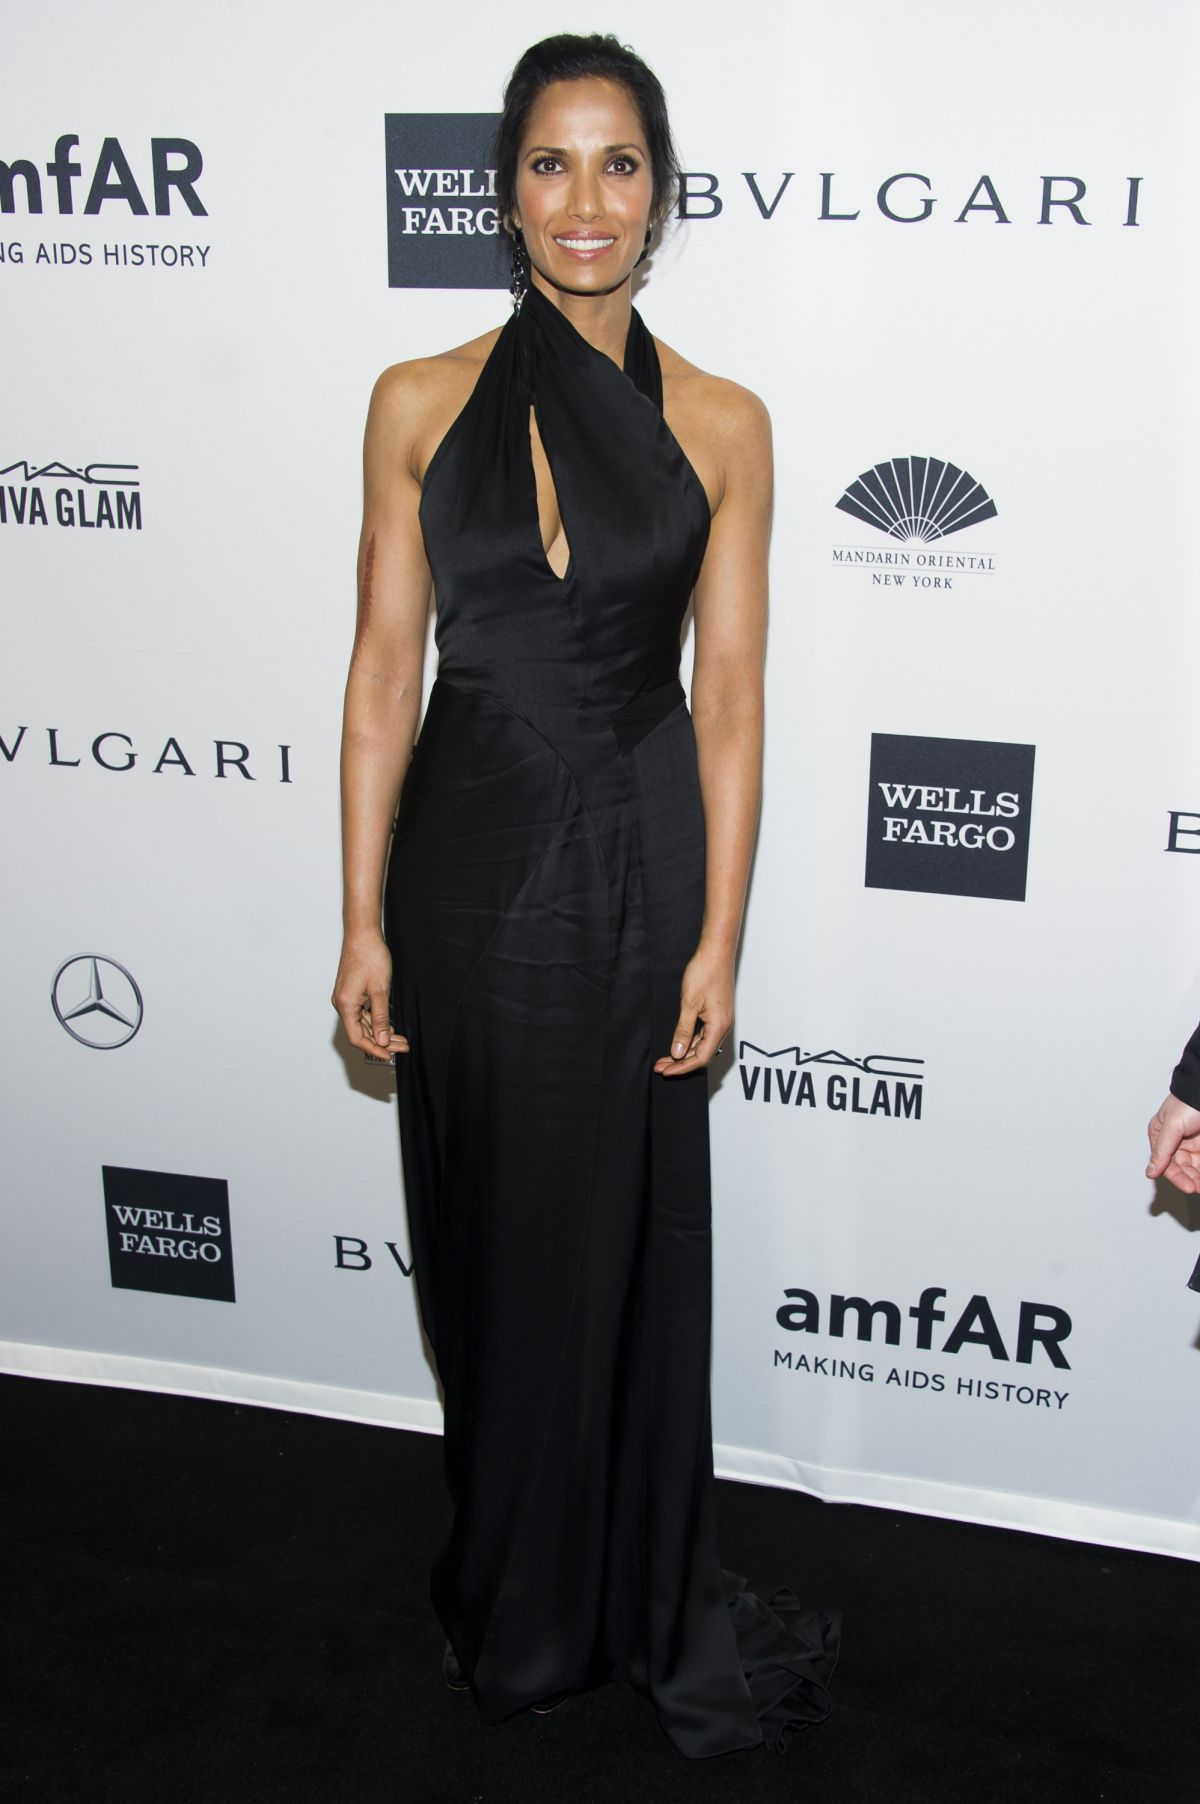 PADMA LAKSHMI at 2014 AMFAR Gala in New York